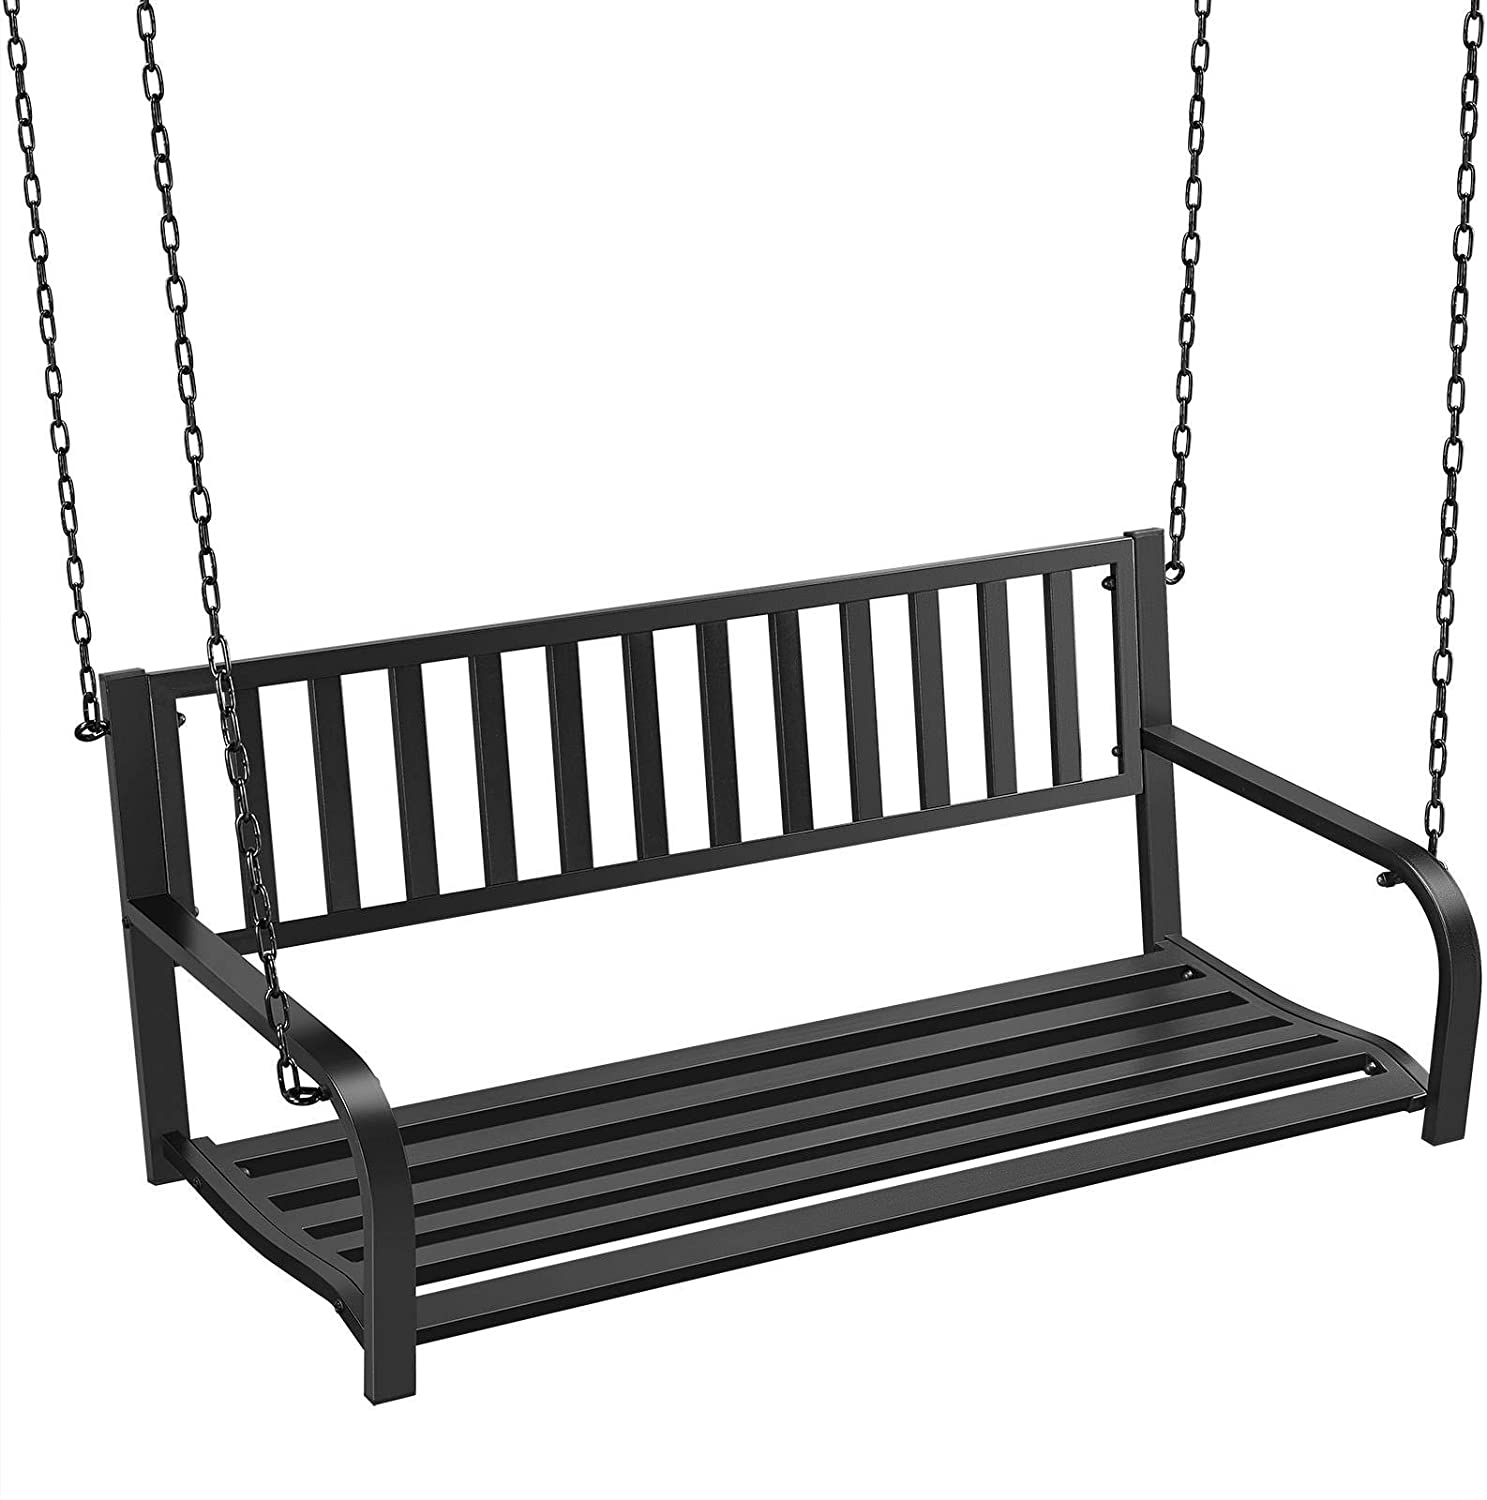 Max 42% OFF Topeakmart Hanging Porch Swing Bench Credence Outdoor Metal 2-Person Iro